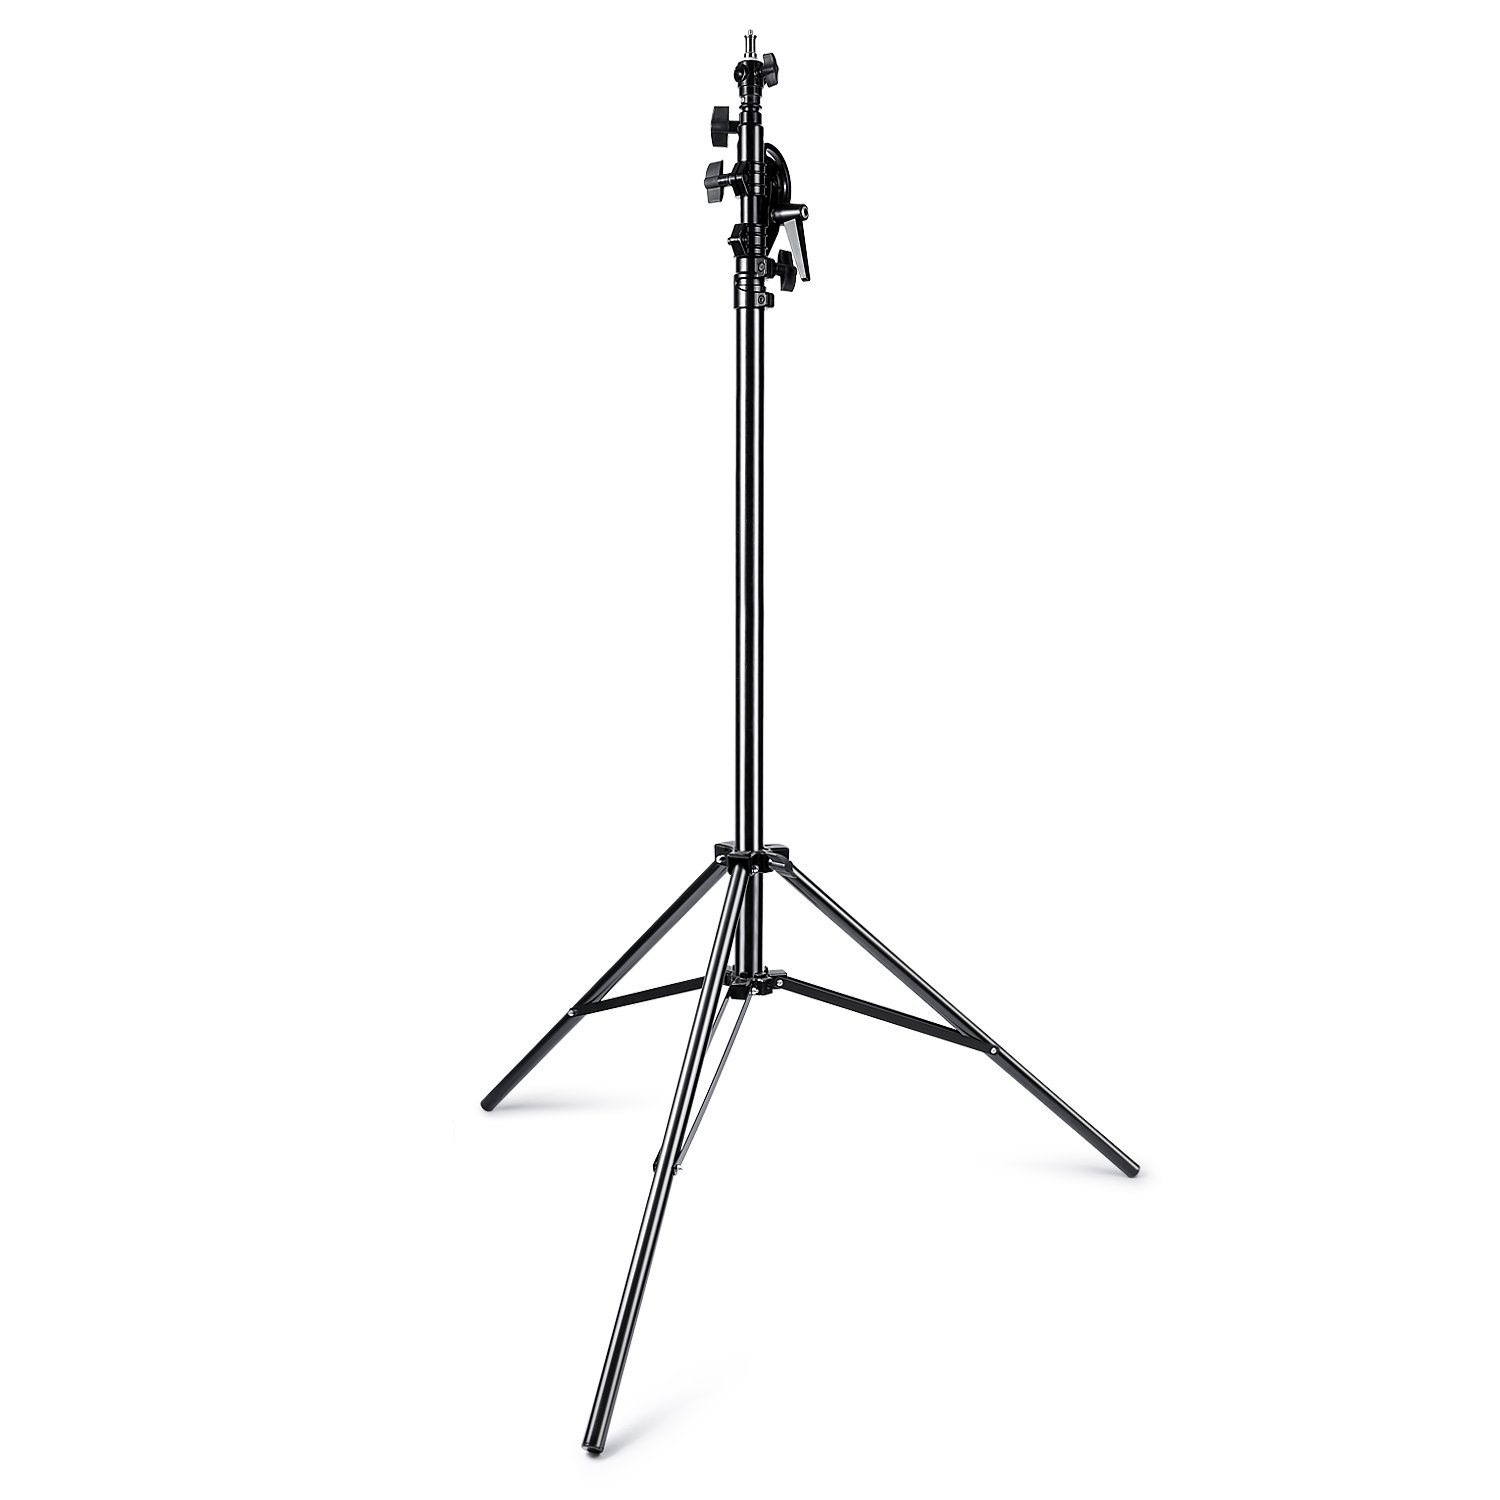 Neewer 13feet/390cm Two Way Rotatable Aluminum Adjustable Tripod Boom Light Stand with Sandbag for Studio Photography Video